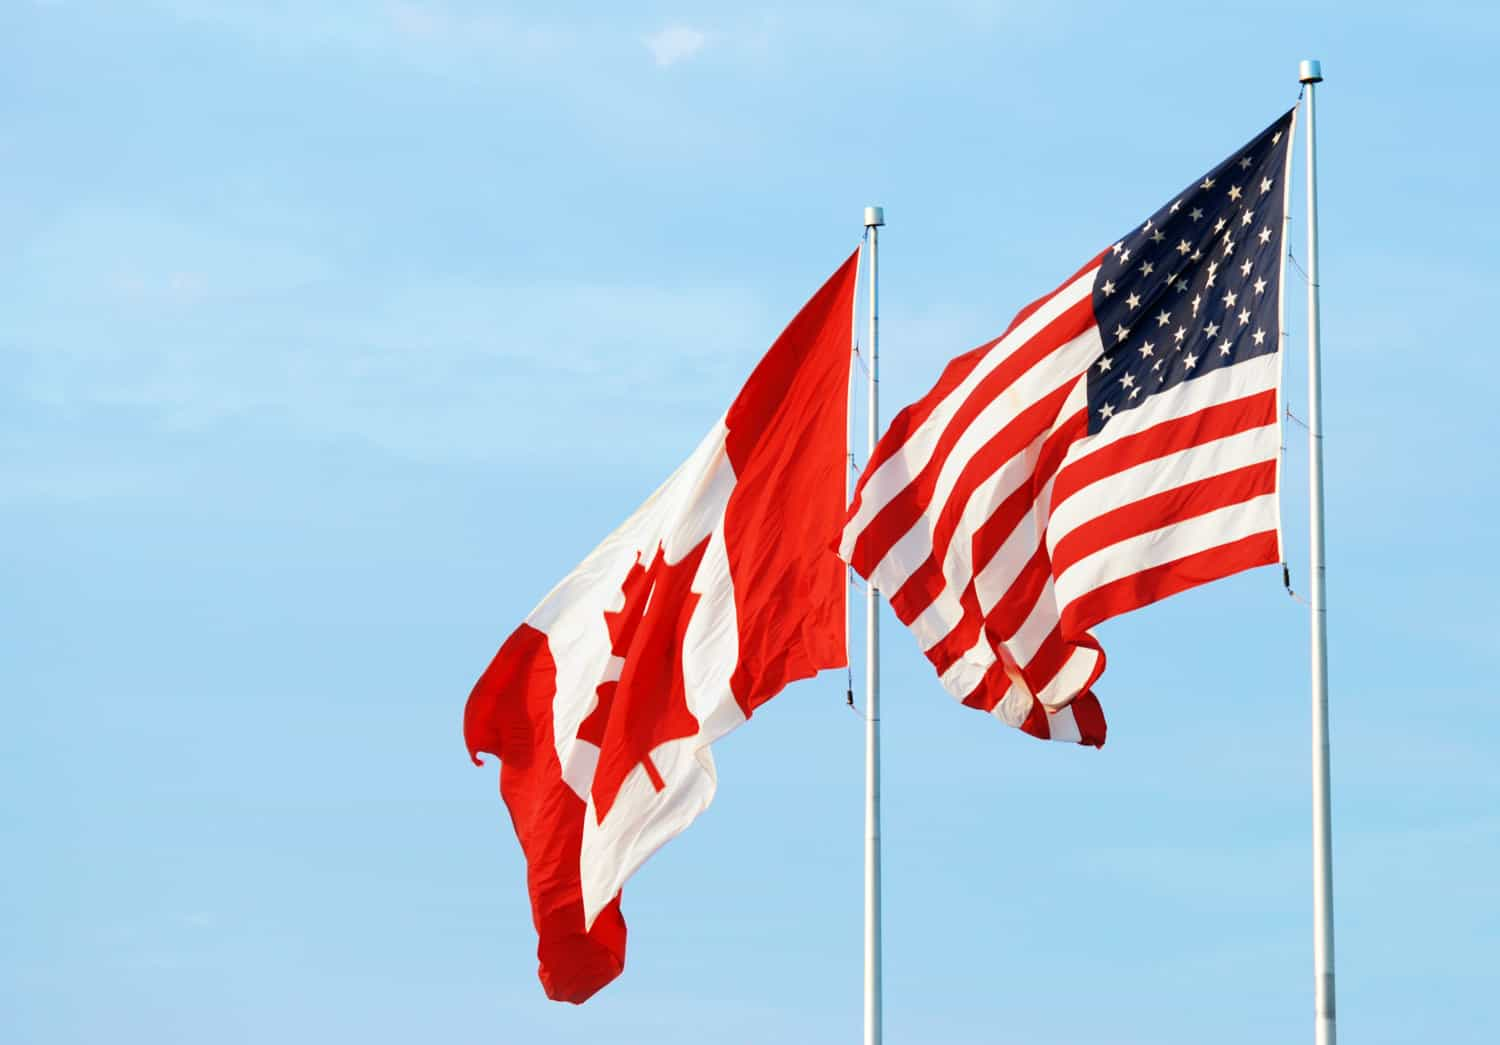 The Canadian and U.S. flags flying side-by-side